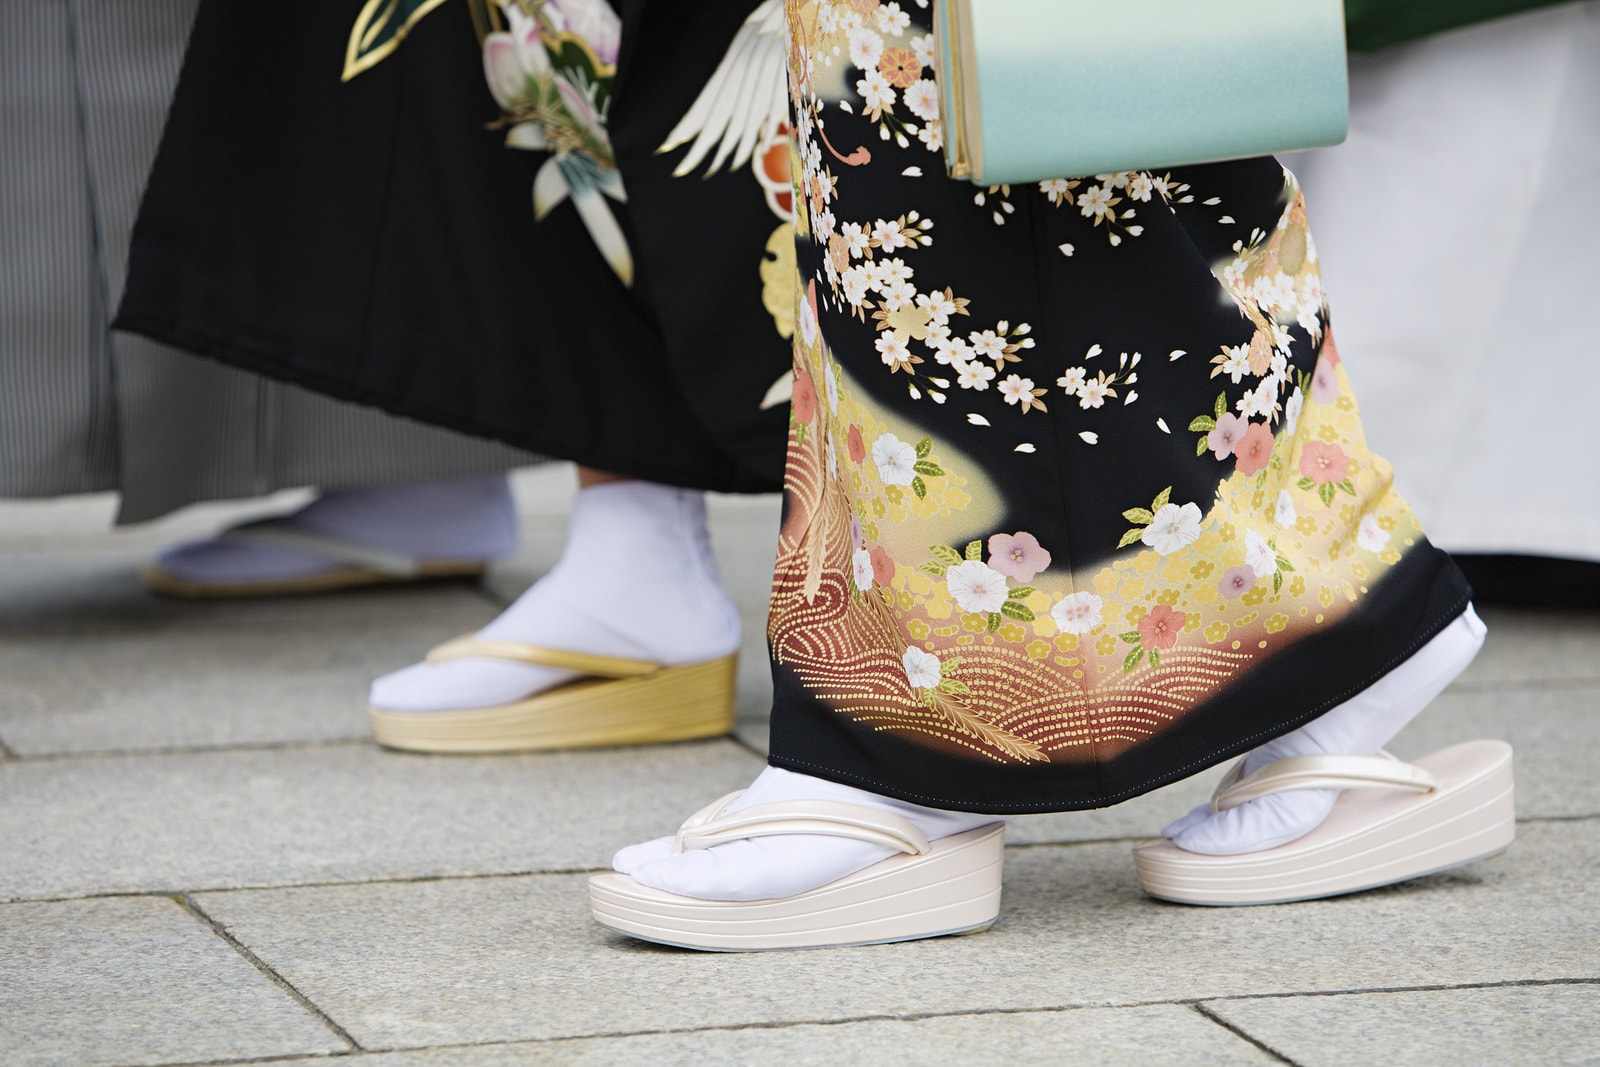 Japanese Women in Traditional Dress at Meiji Shrine, Tokyo, Japan